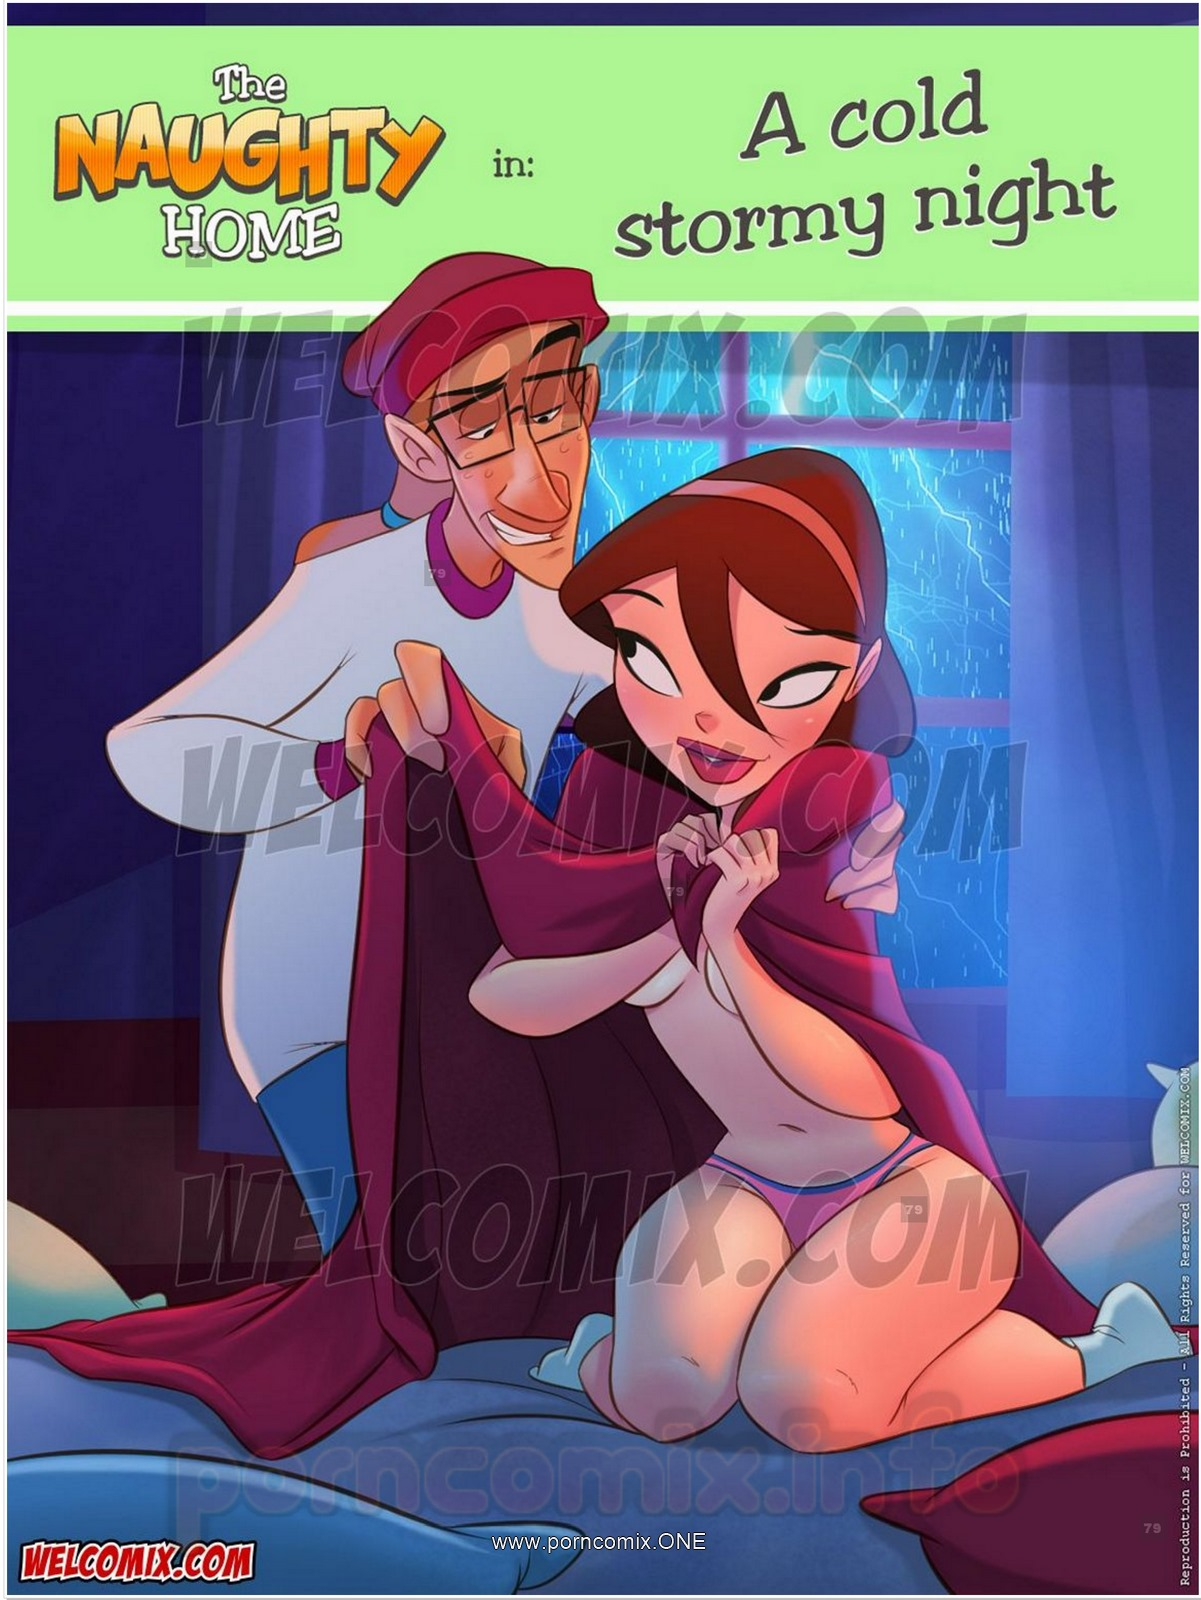 Welcomix-Naughty Home 21- Cold Stormy Night